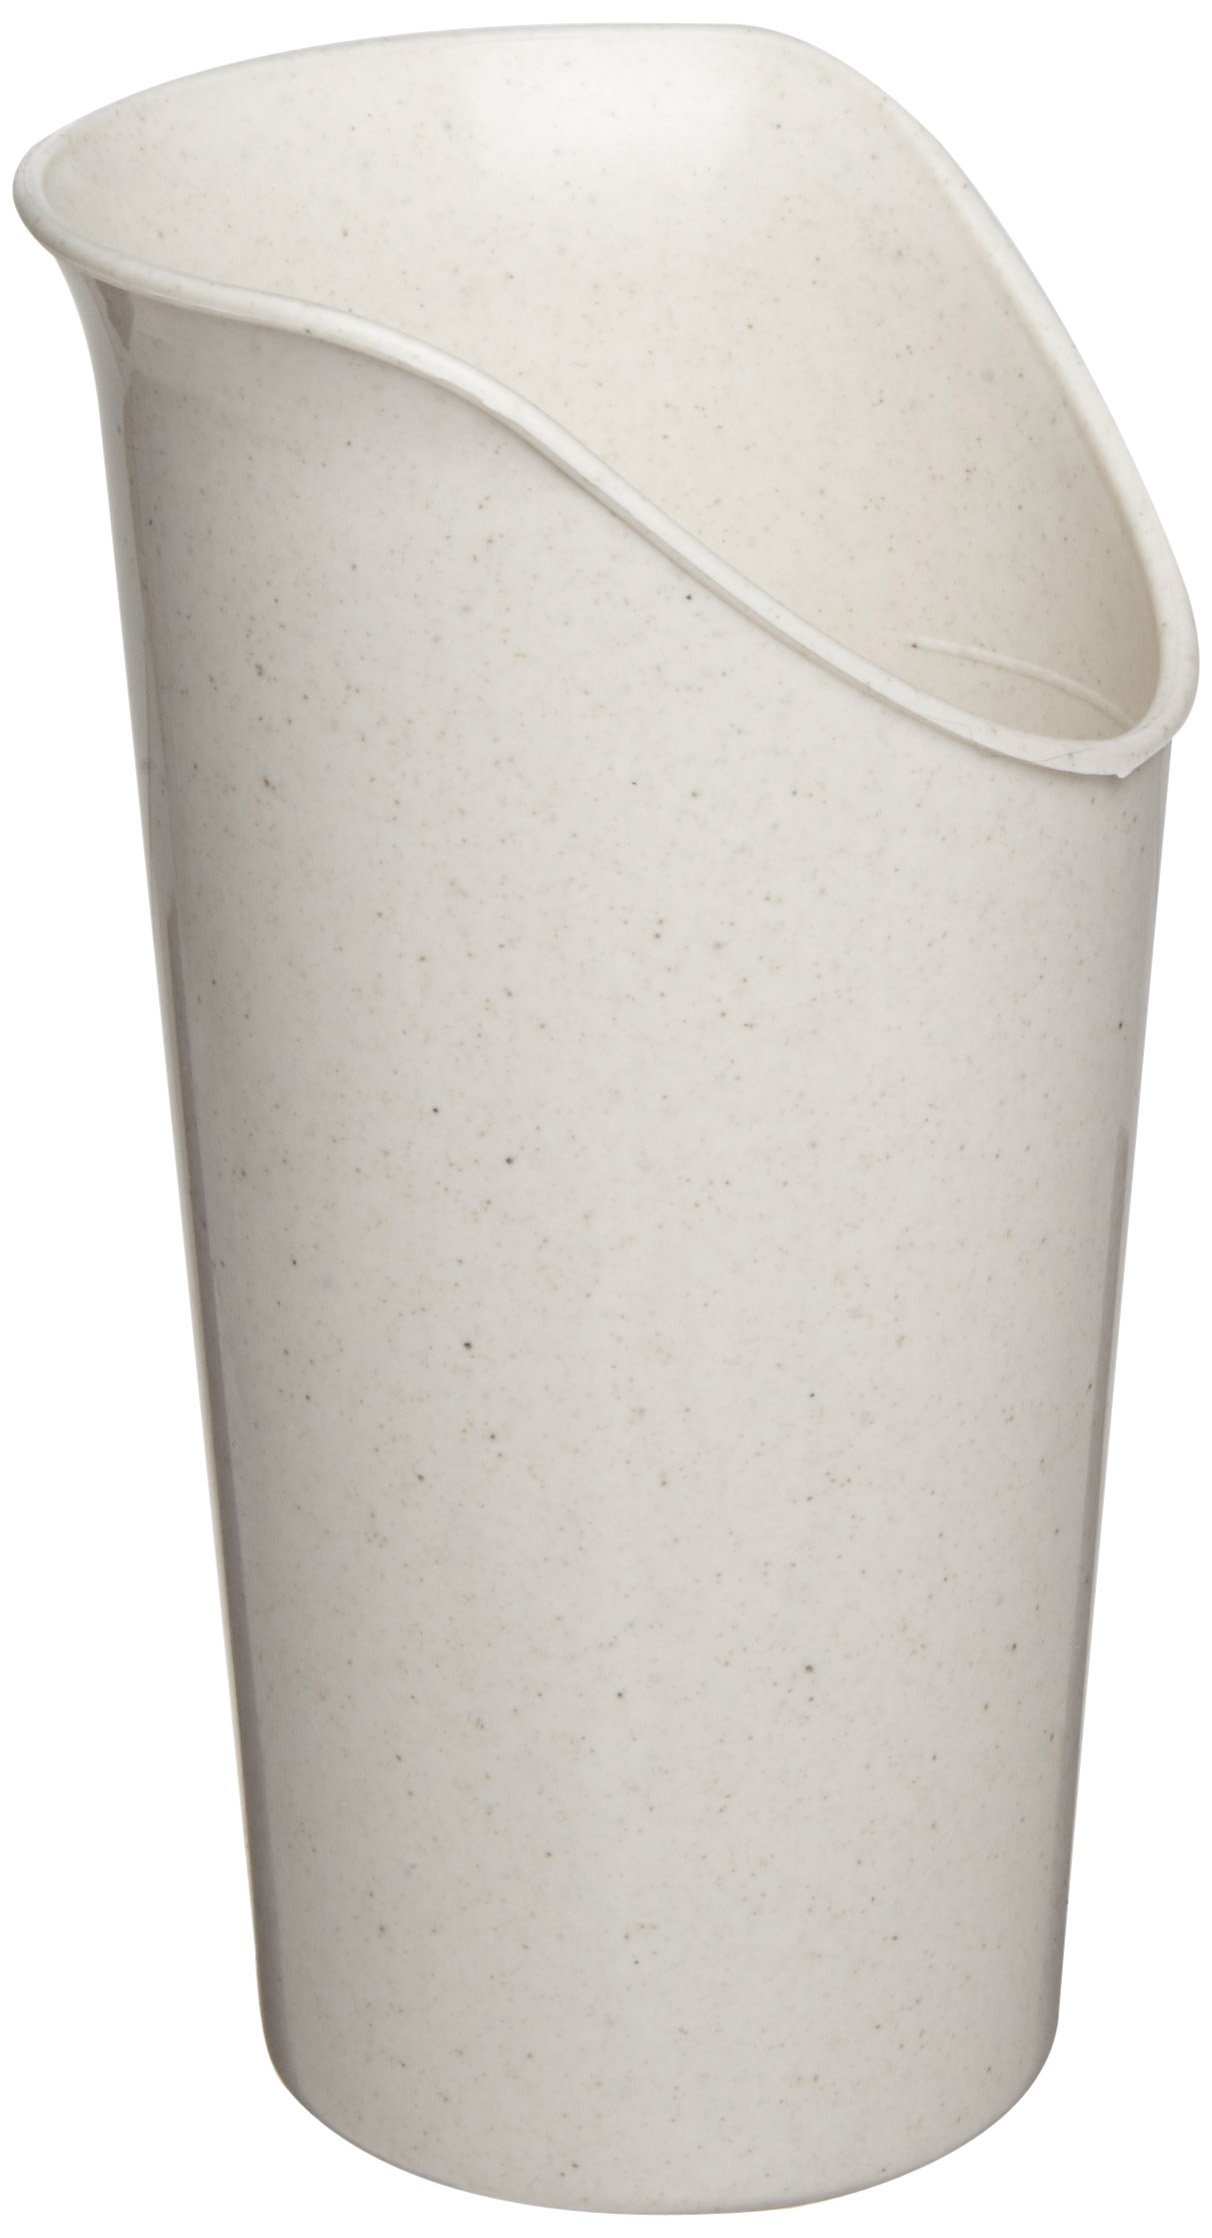 Ableware 745930612 Sandstone Nosey Cup Sandstone (Box of 6)